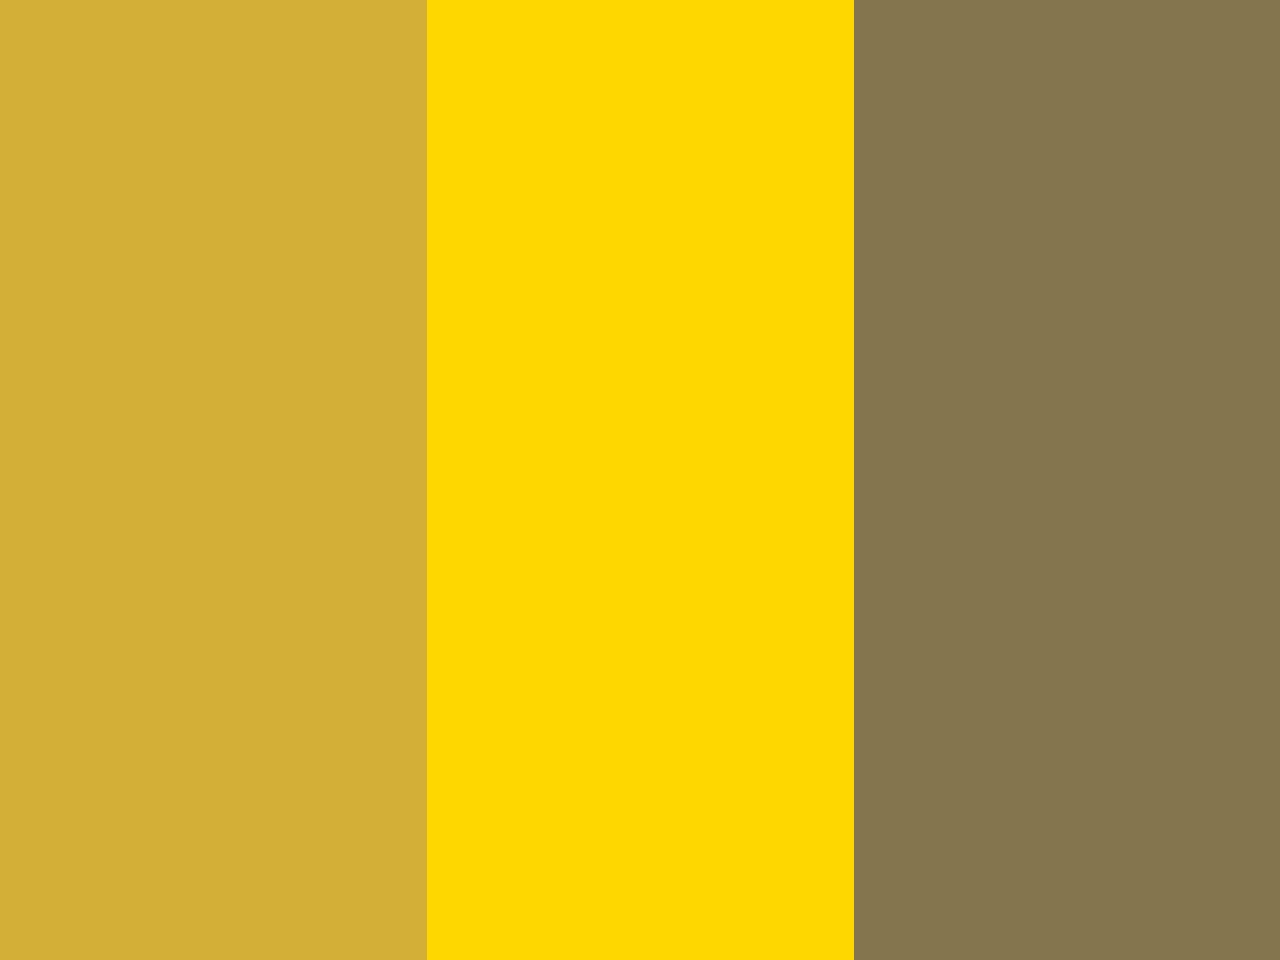 Gold Metallic Gold Web Golden and Gold Fusion Three Color Background 1280x960